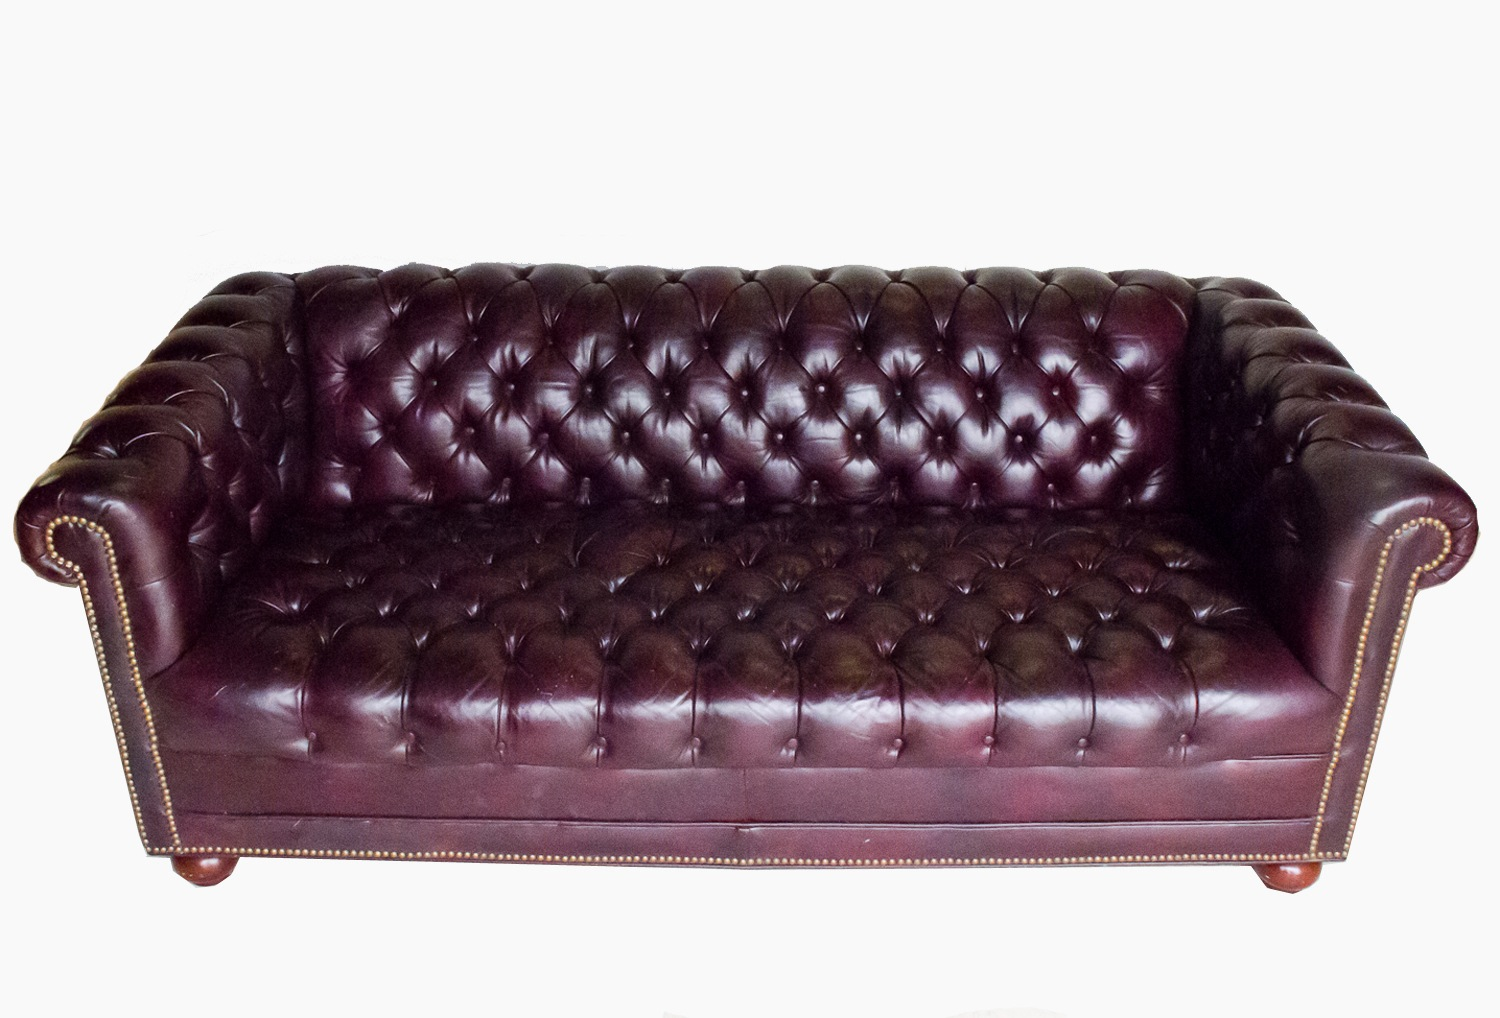 leather-tufted-sofa-new-leather-sofa-tufted